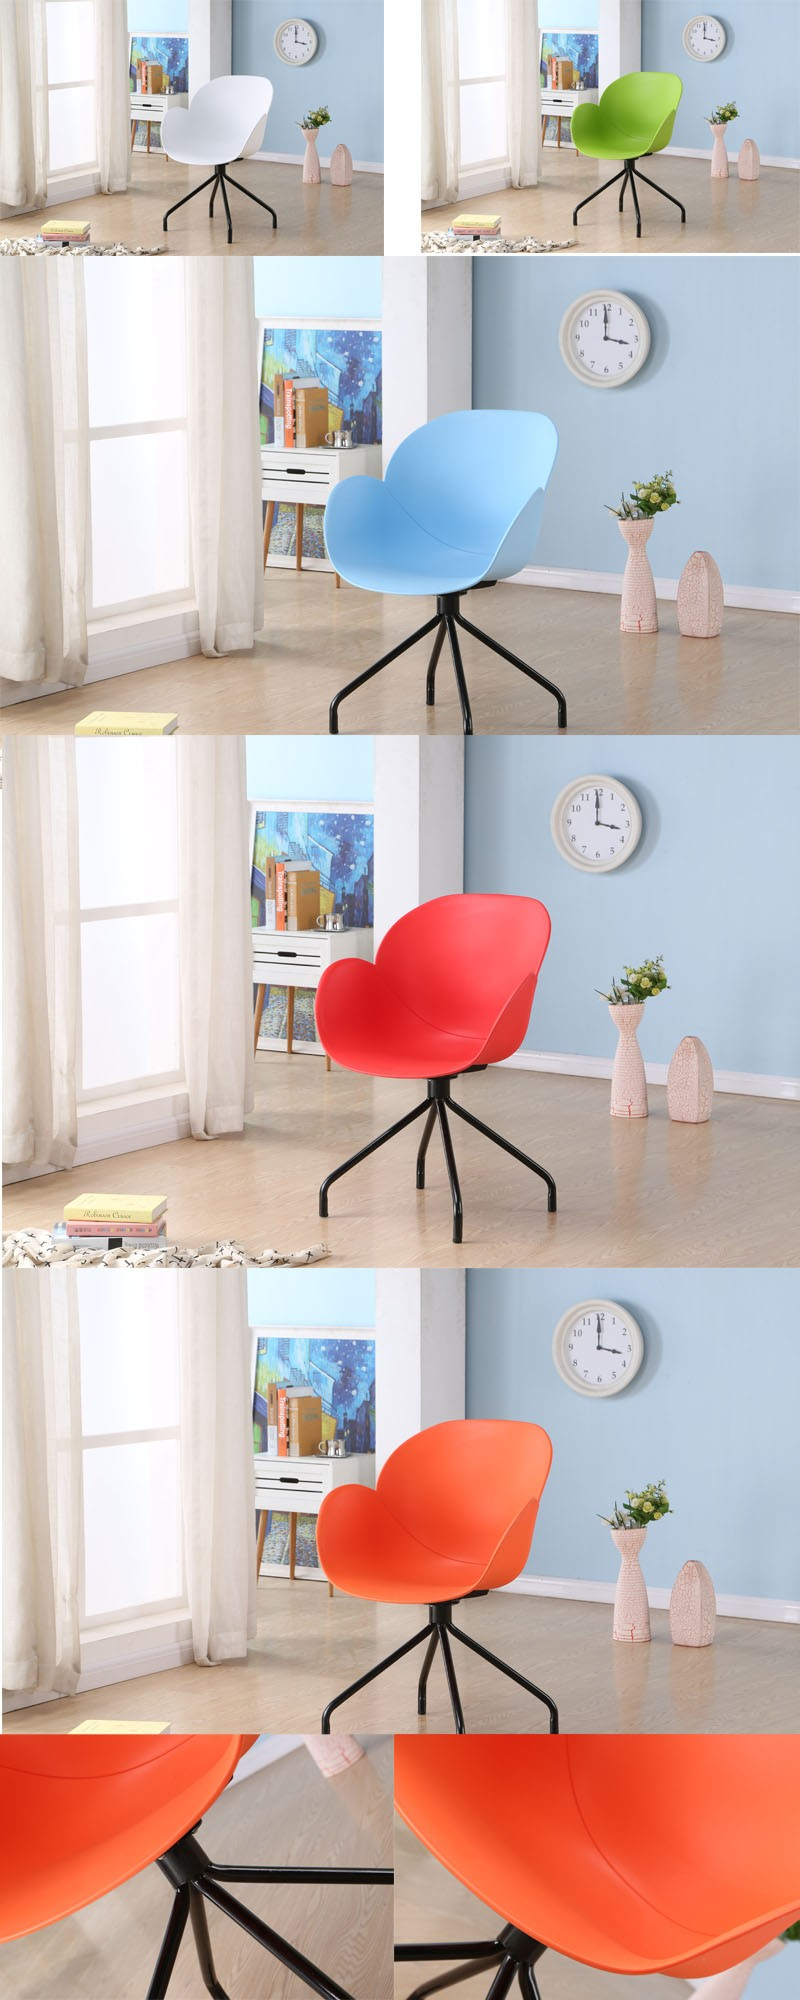 manufacture dining room Furniture Plastic Chair